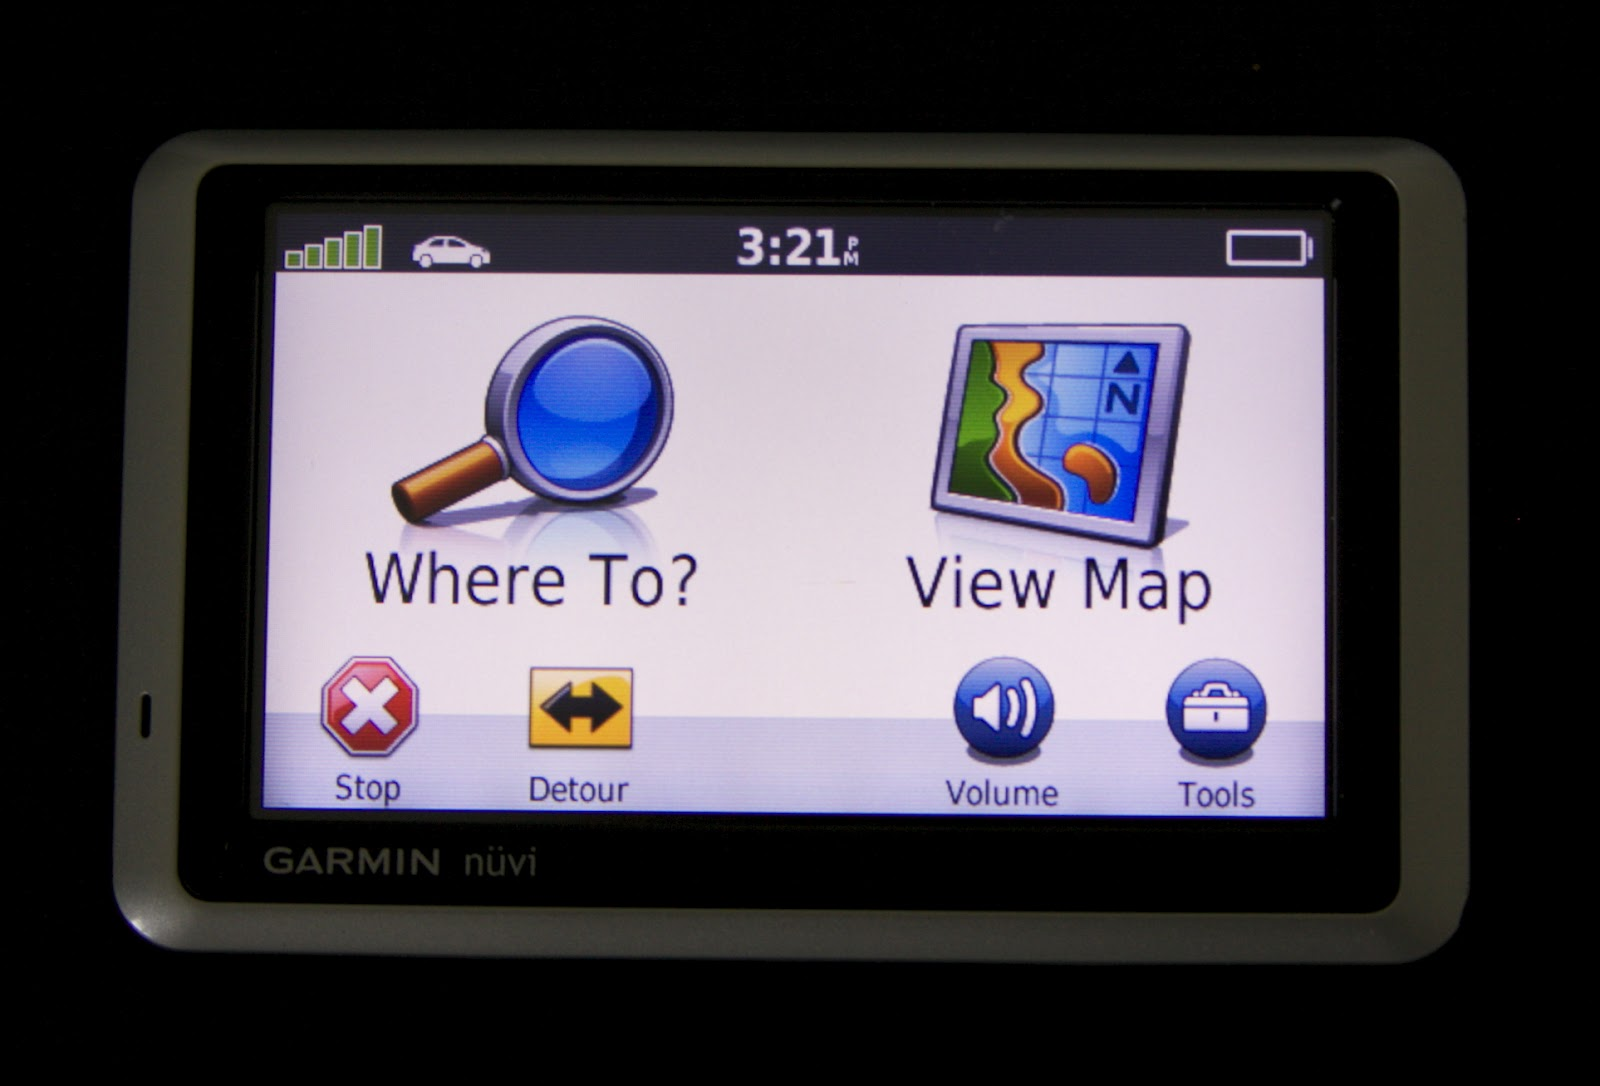 Download maps to garmin gps on rim maps, delorme maps, wsi maps, google maps, sygic maps, onstar maps, topographic maps, digitalglobe maps, airnav maps, tomtom maps, xdrive maps, lg maps, paradox interactive maps, etrex 20 maps, igage maps, motionx maps, michelin maps, igo maps, lowrance maps,